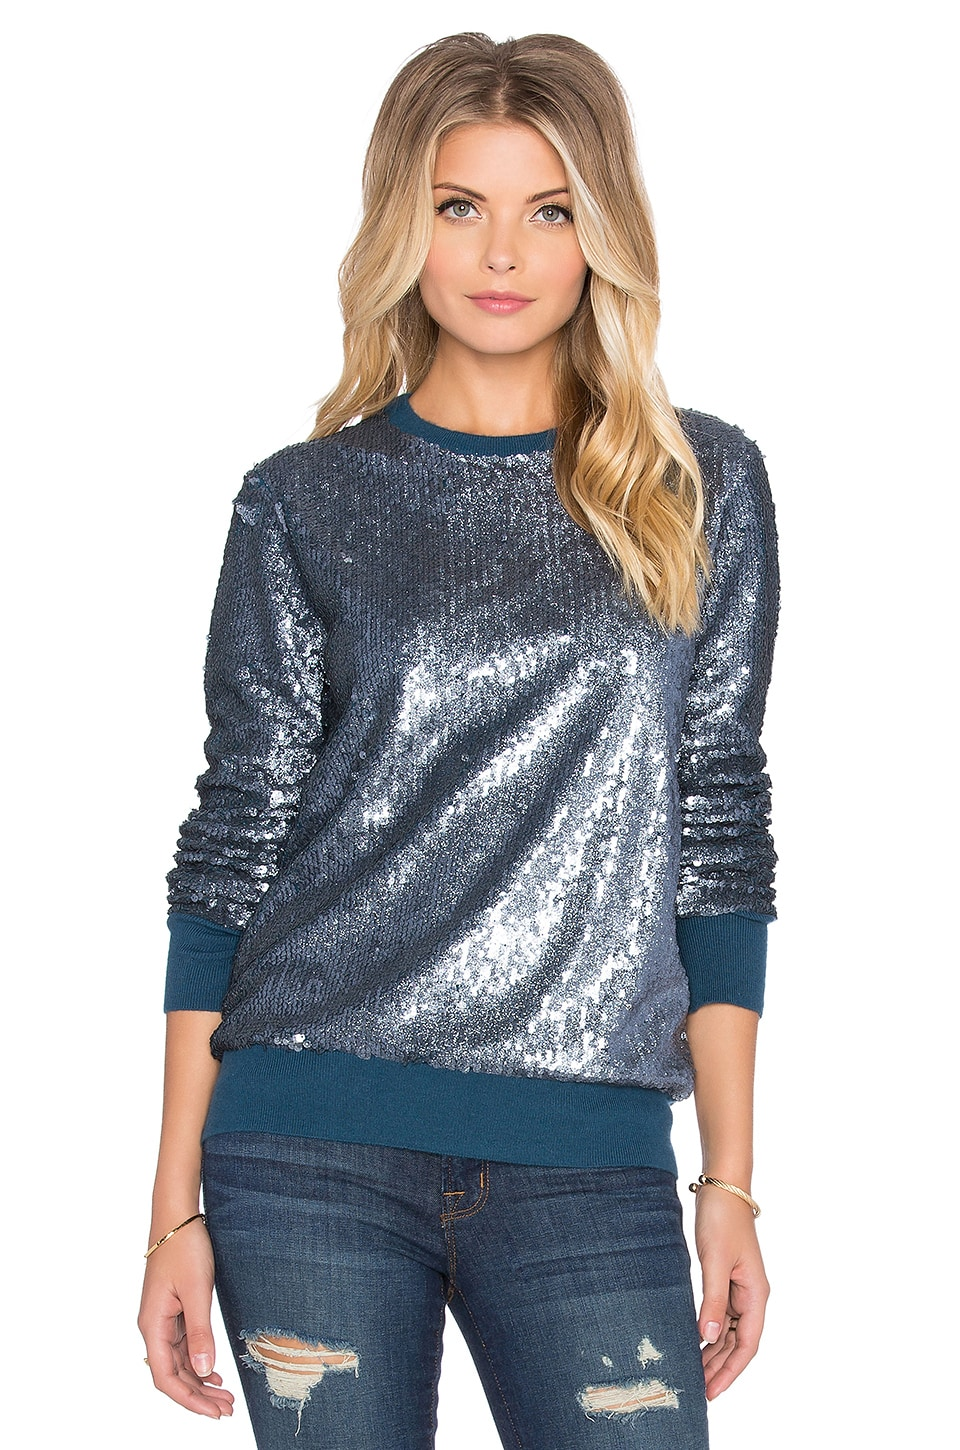 Equipment Shane All-Over Sequins Sweater in Majolica Blue